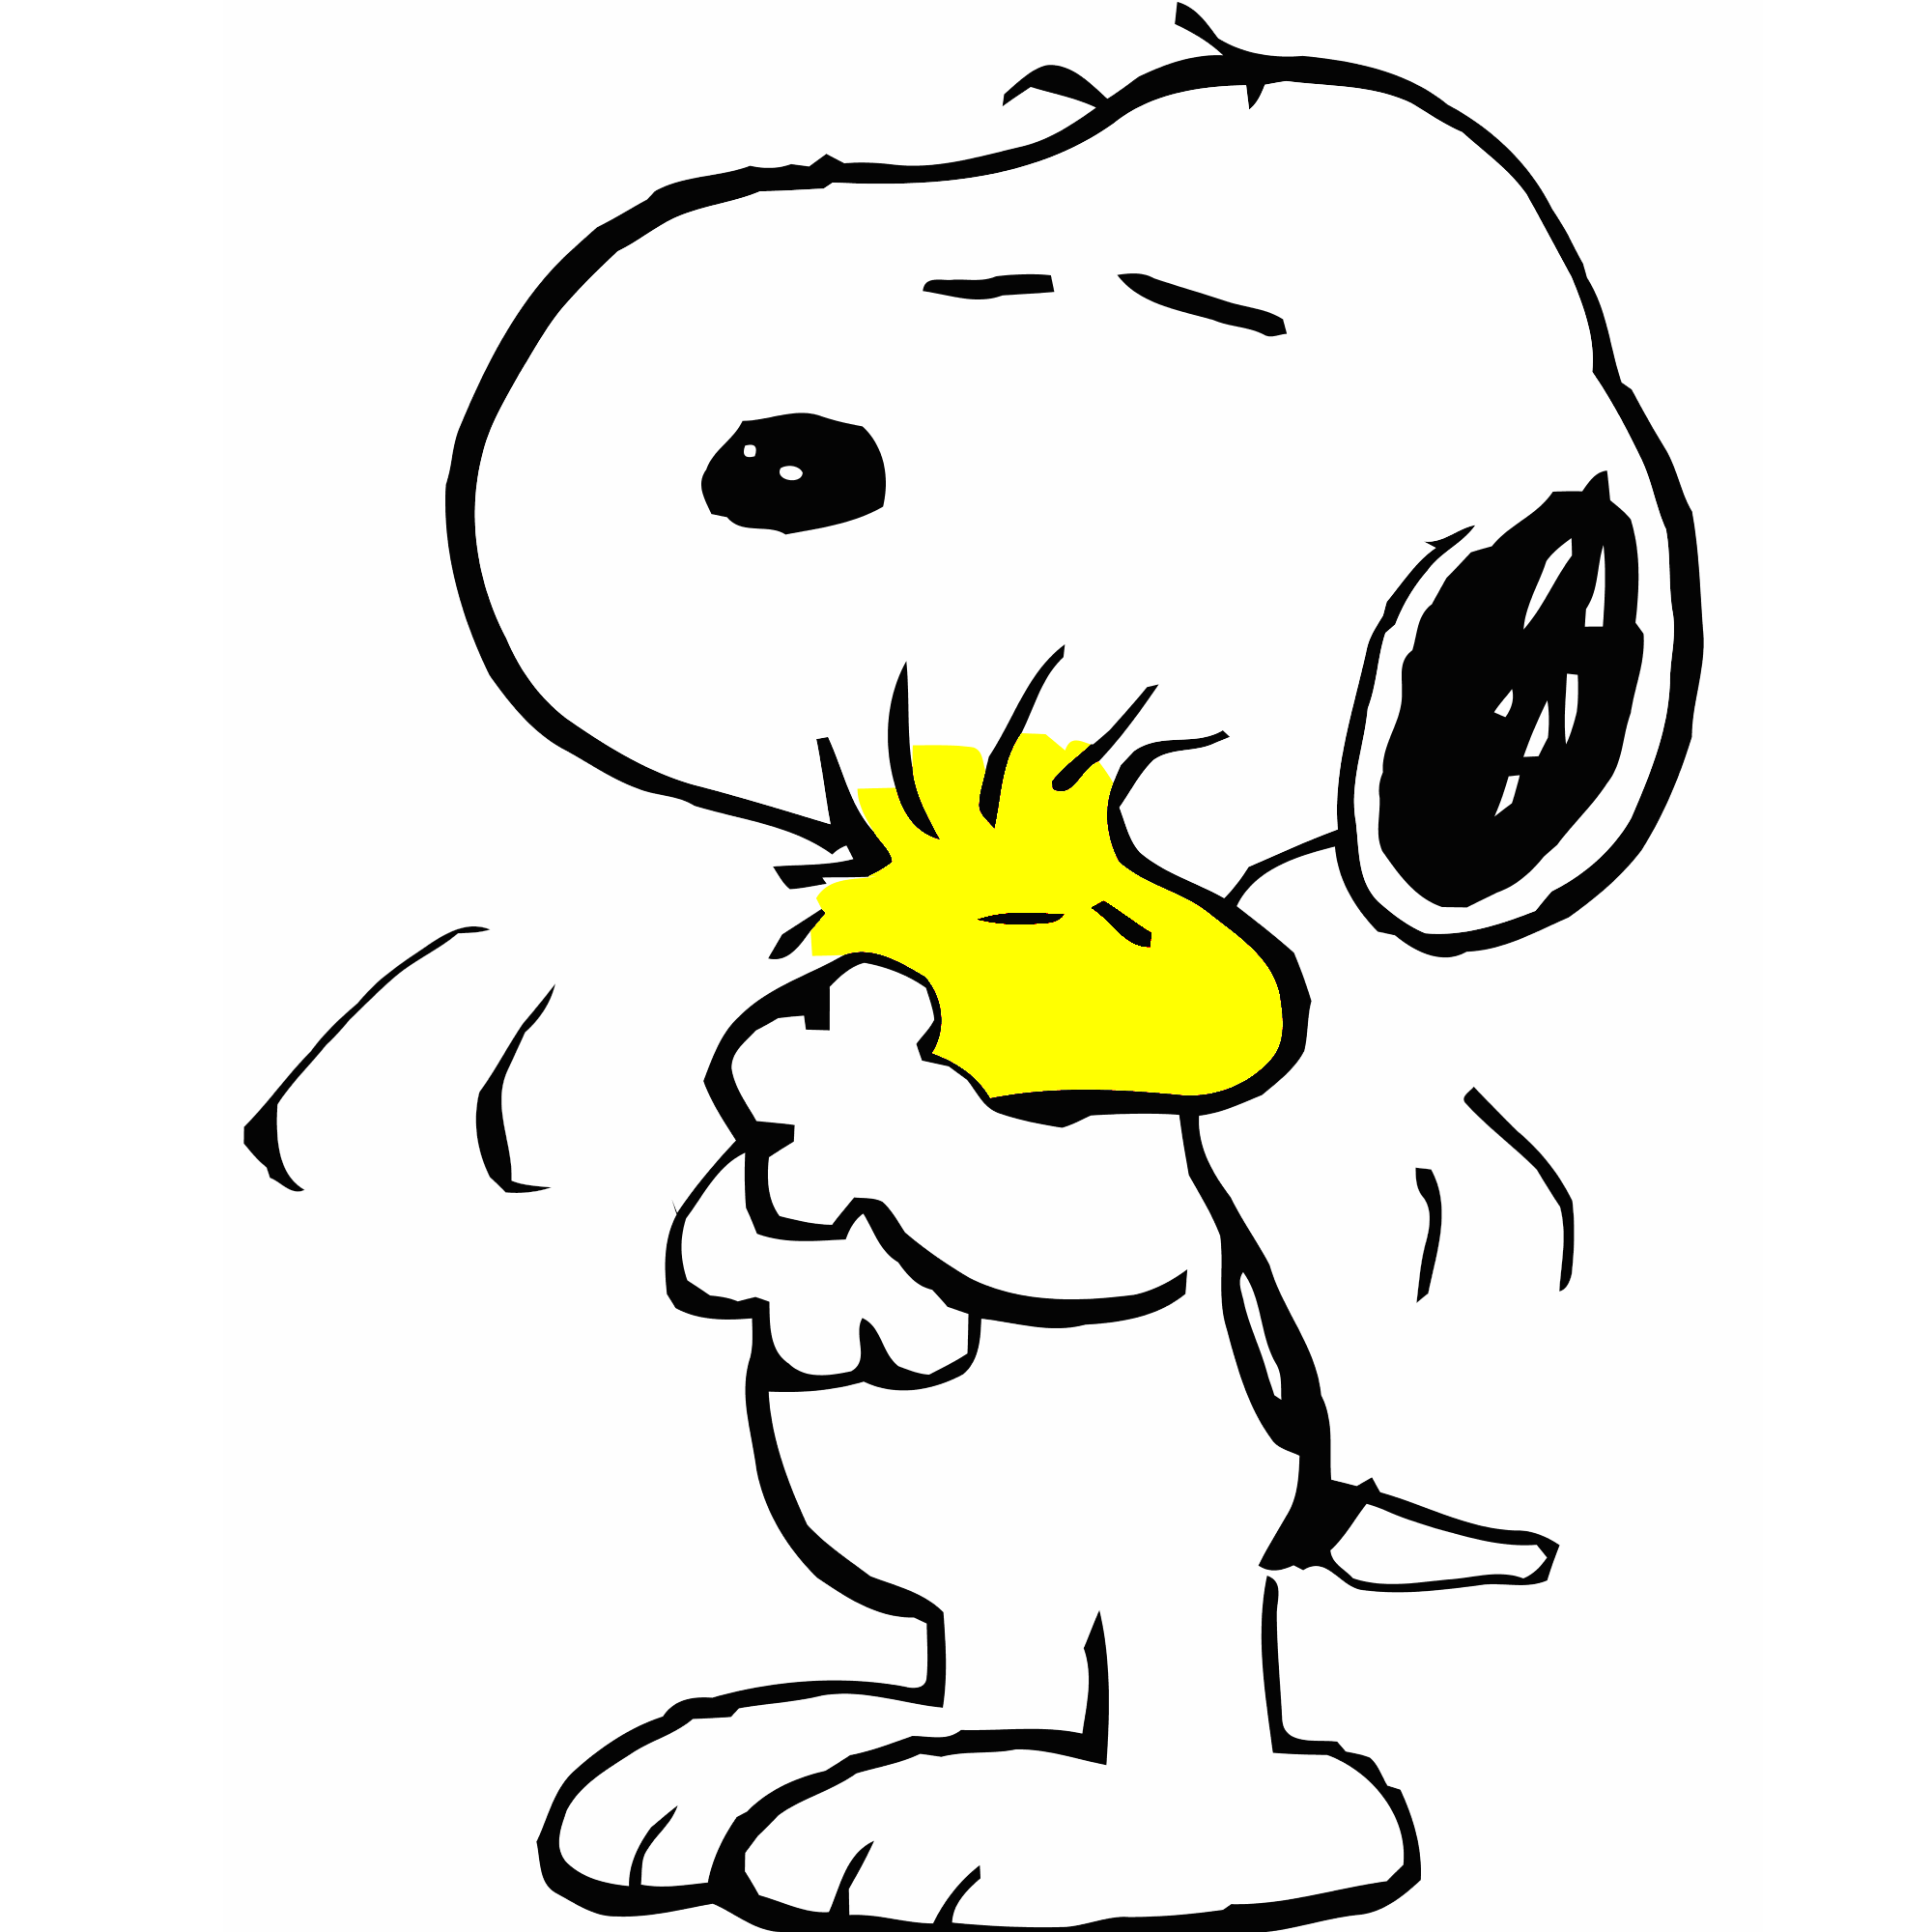 Transparent free images only. Snoopy png clip download